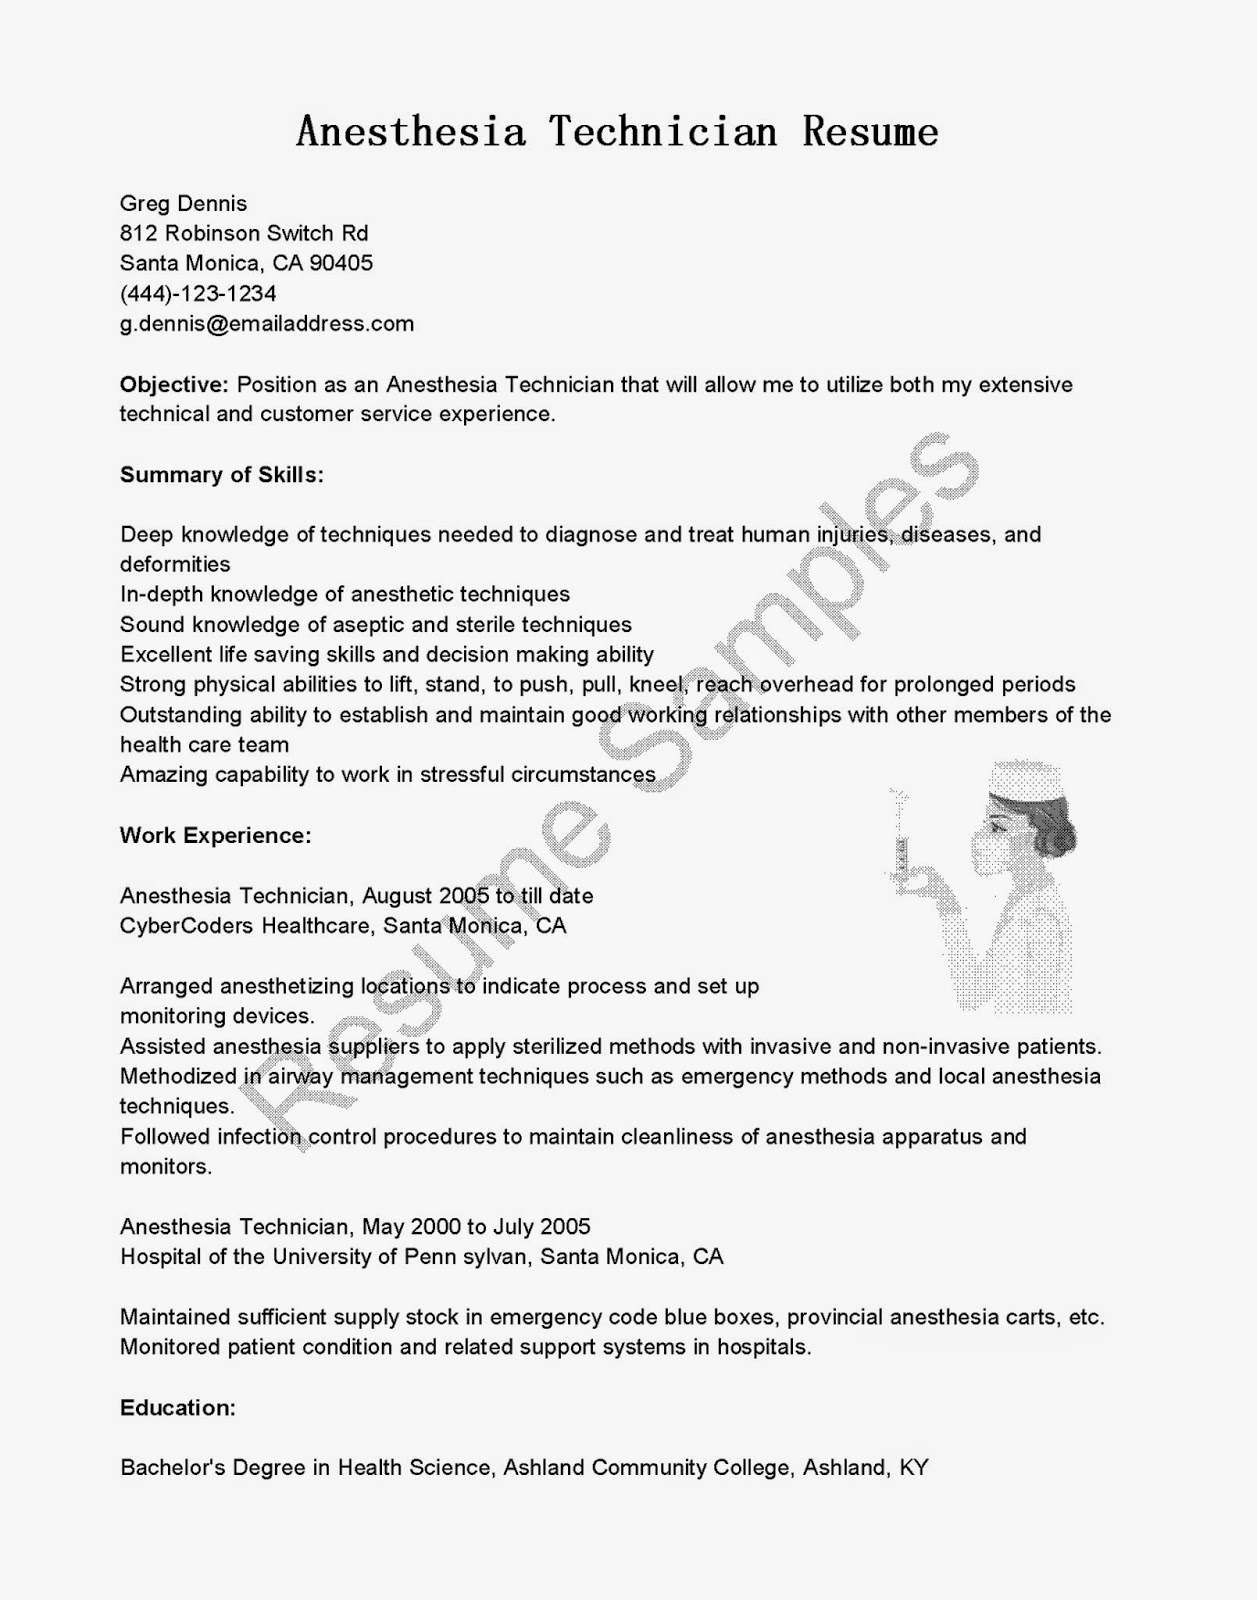 Resume Samples Anesthesia Technician Resume Sample